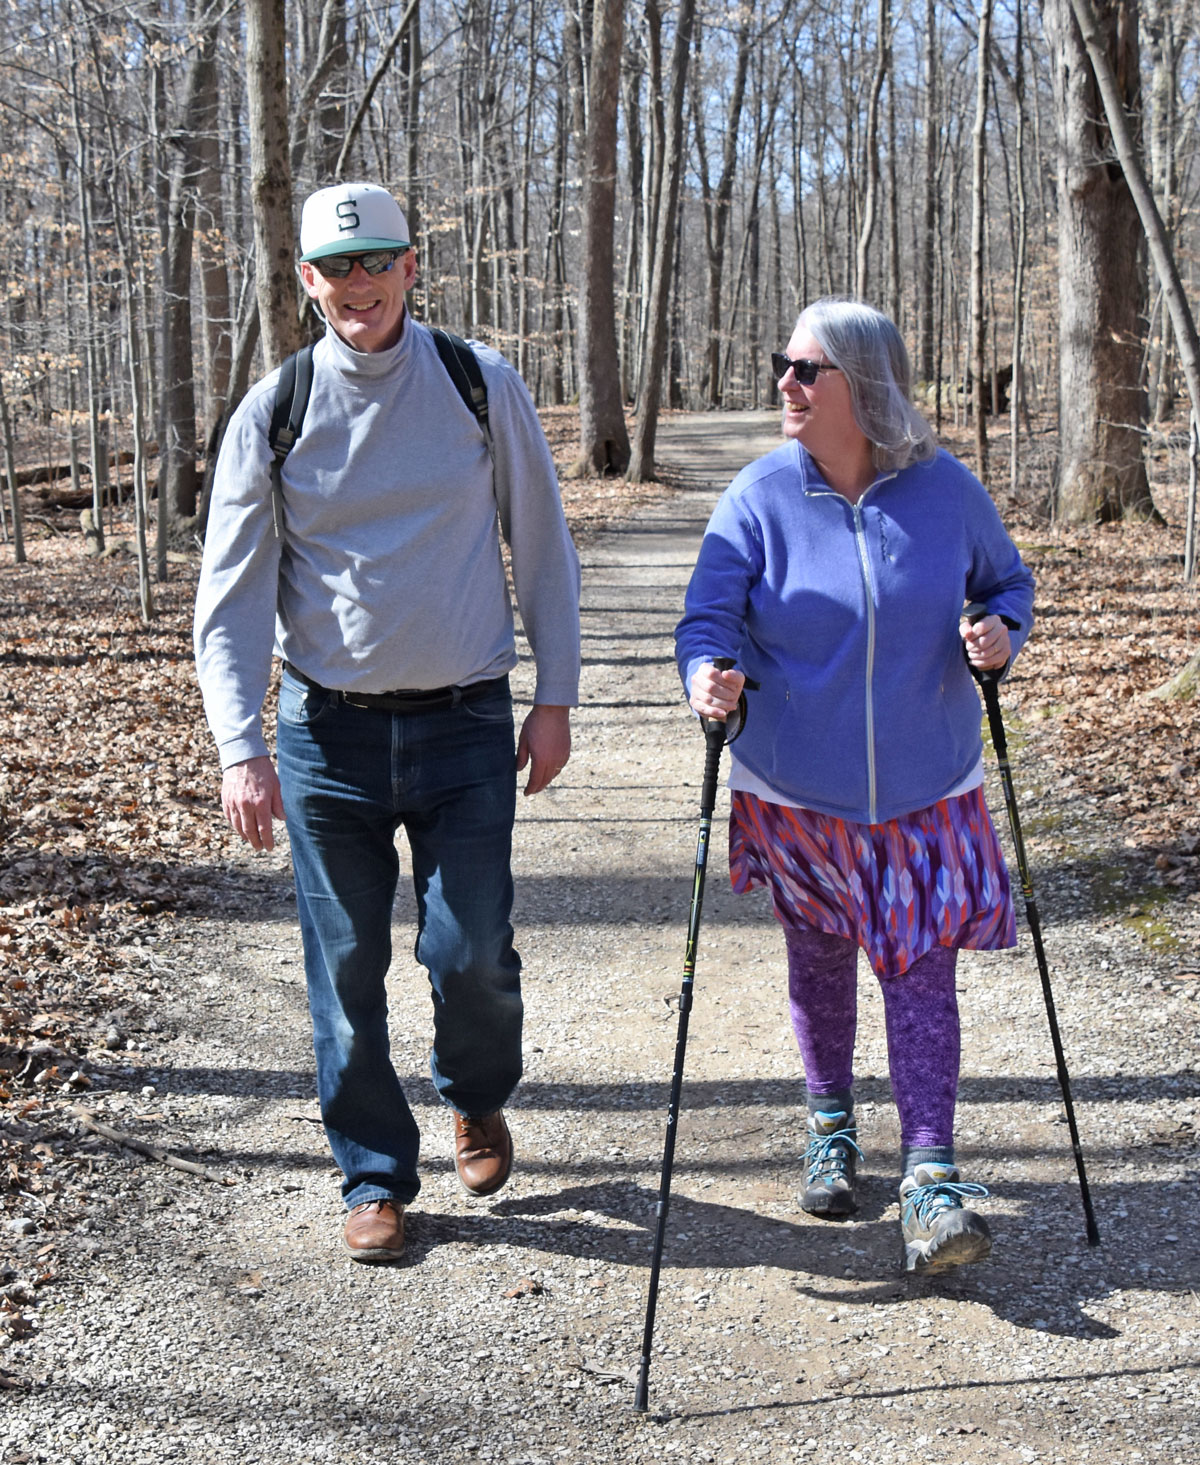 Metro Parks make life better for a Michigan couple that moved to Central Ohio. Here they walk on the Overlook Trail at Highbanks on a sunny February day